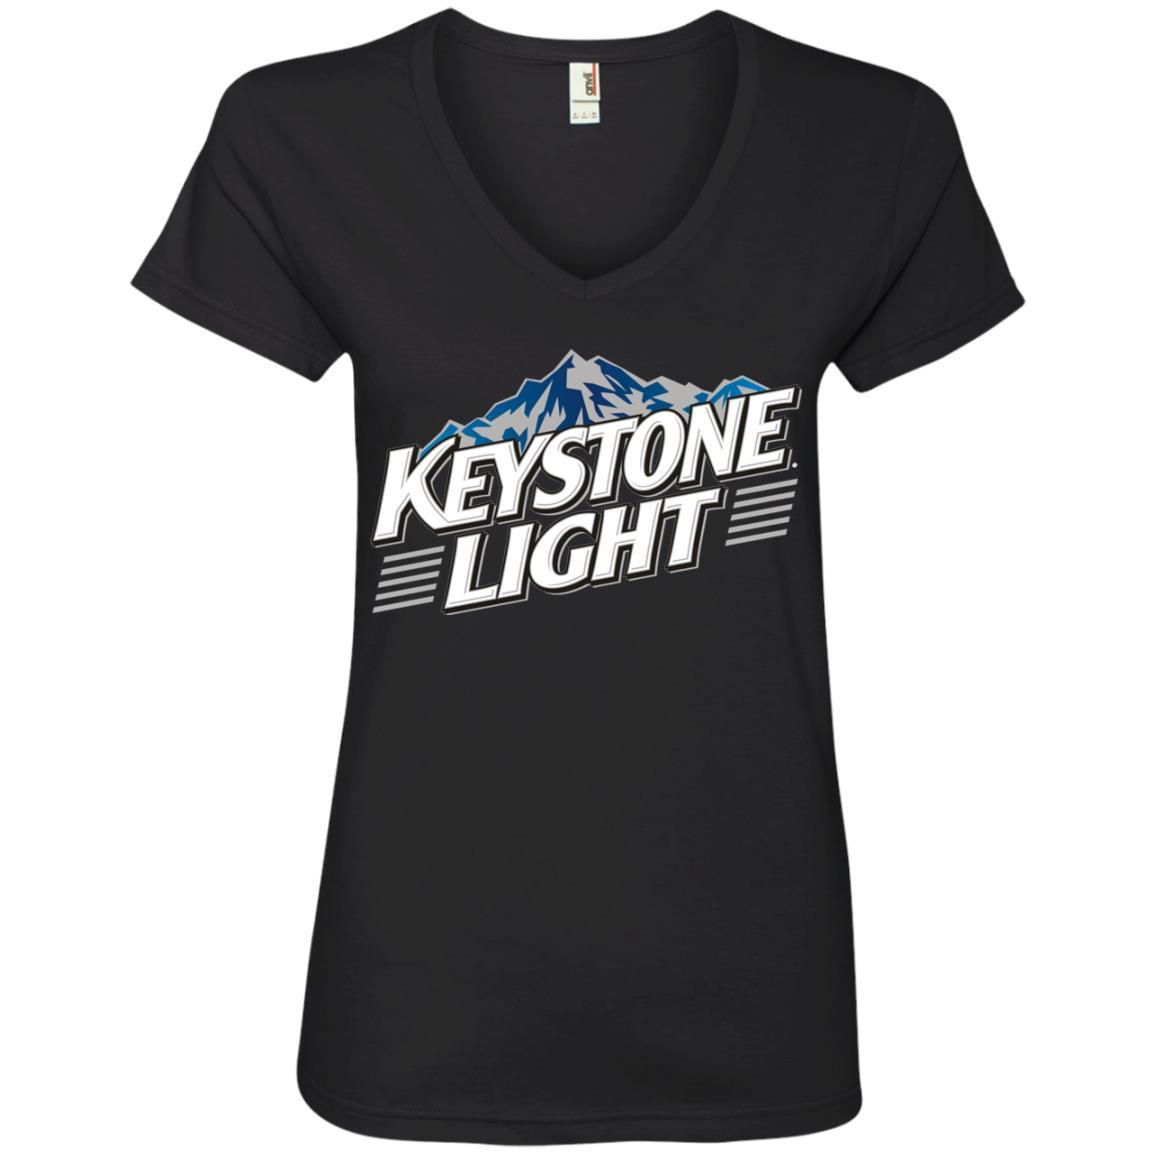 Keystone Light Beer - Ladies' V-Neck T-Shirt Style / Color / Size